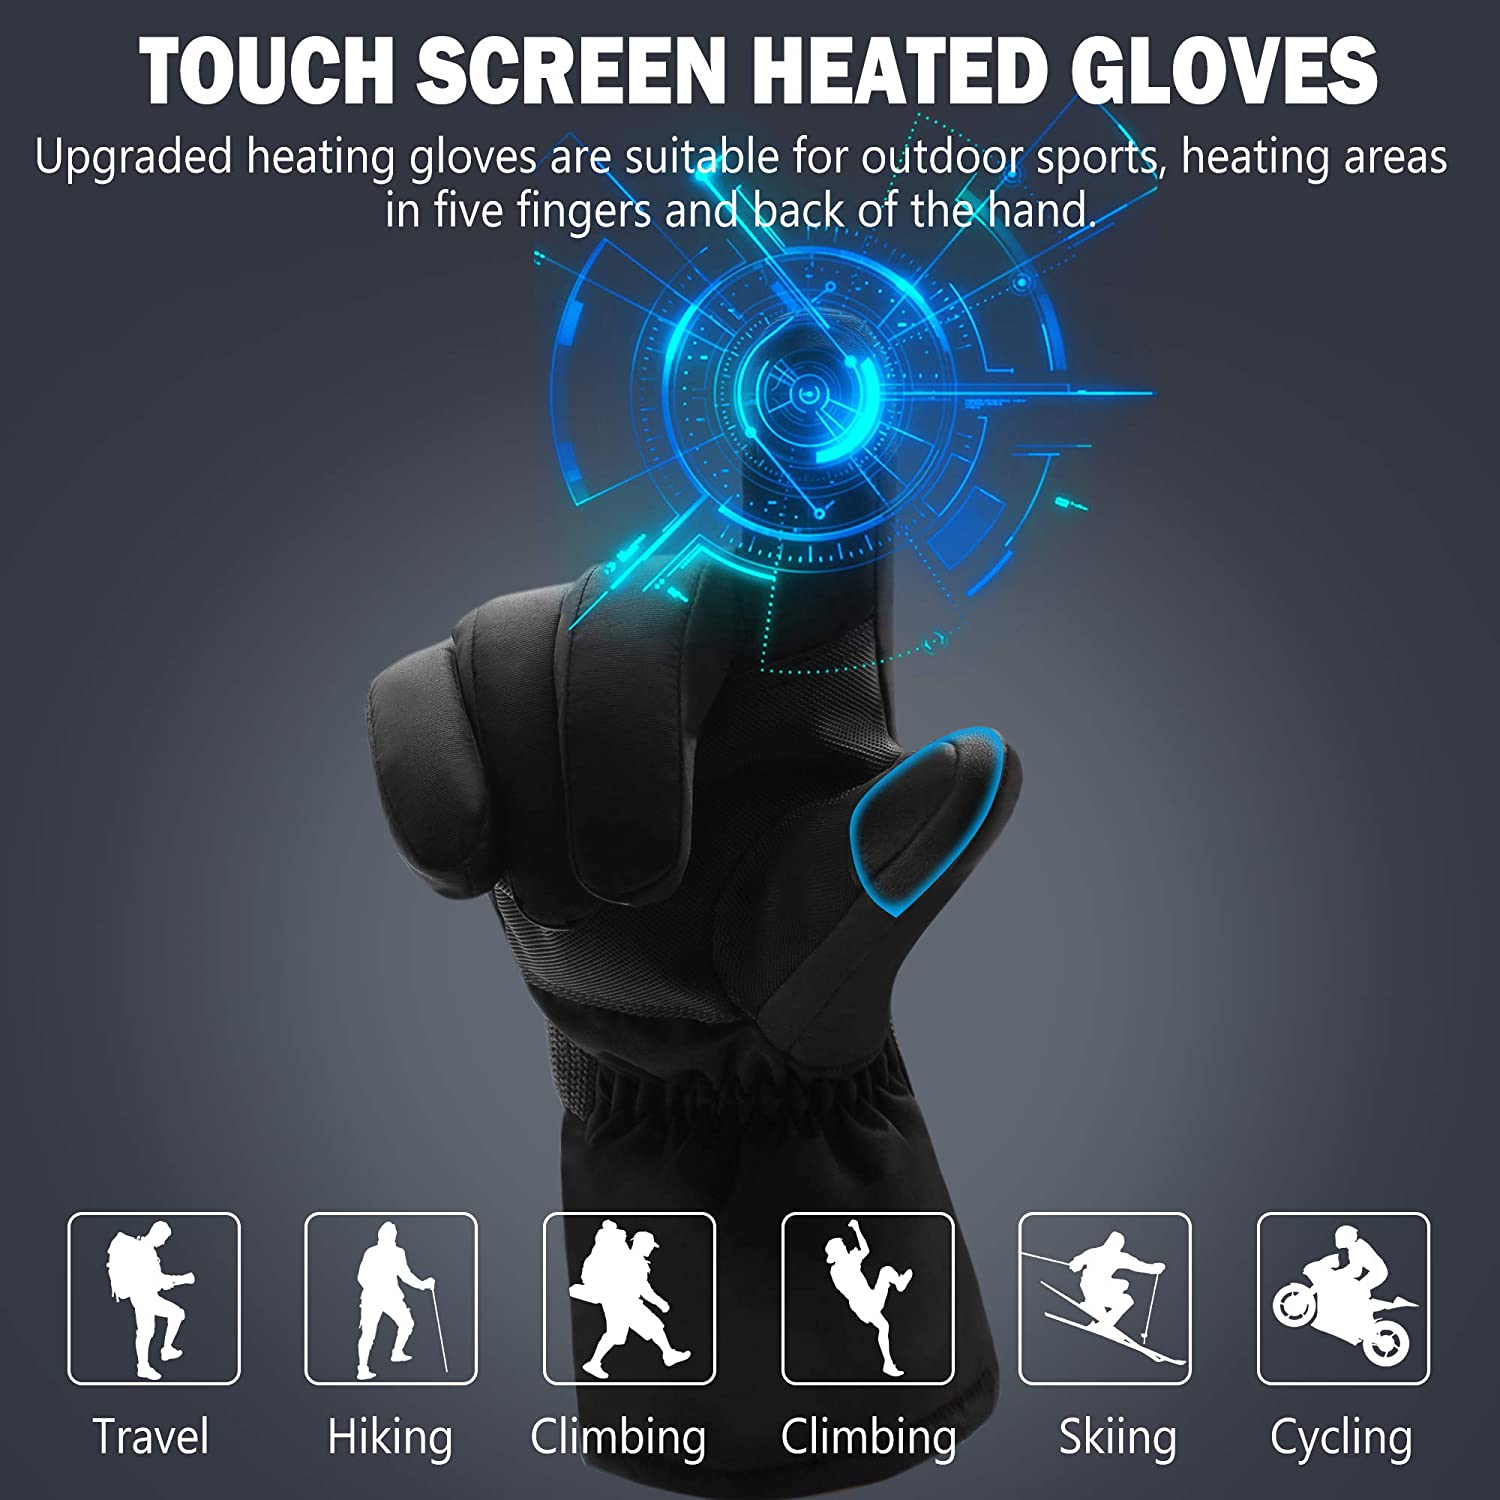 Electric Heated Gloves Rechargeable Battery Heated Gloves for Cold Weather Mens Novelty Gloves